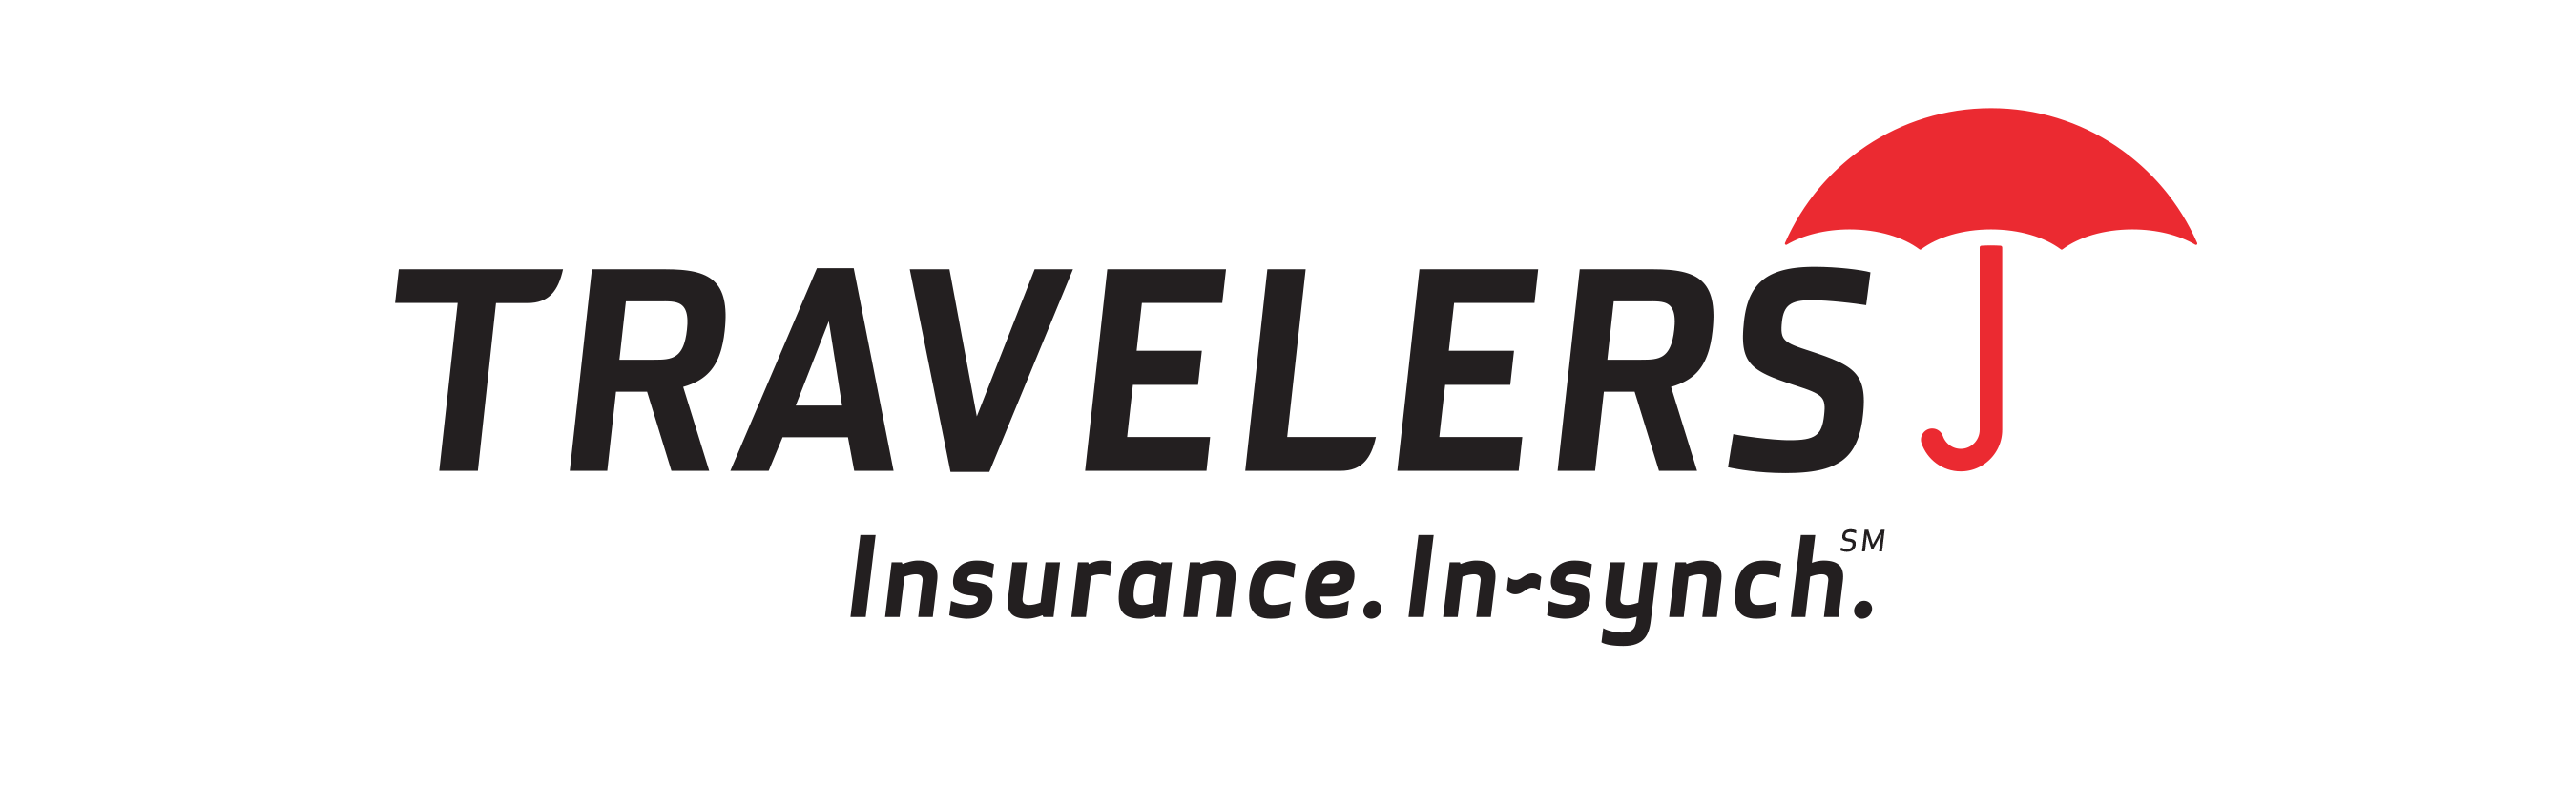 Travelers Insurance Is By Citi